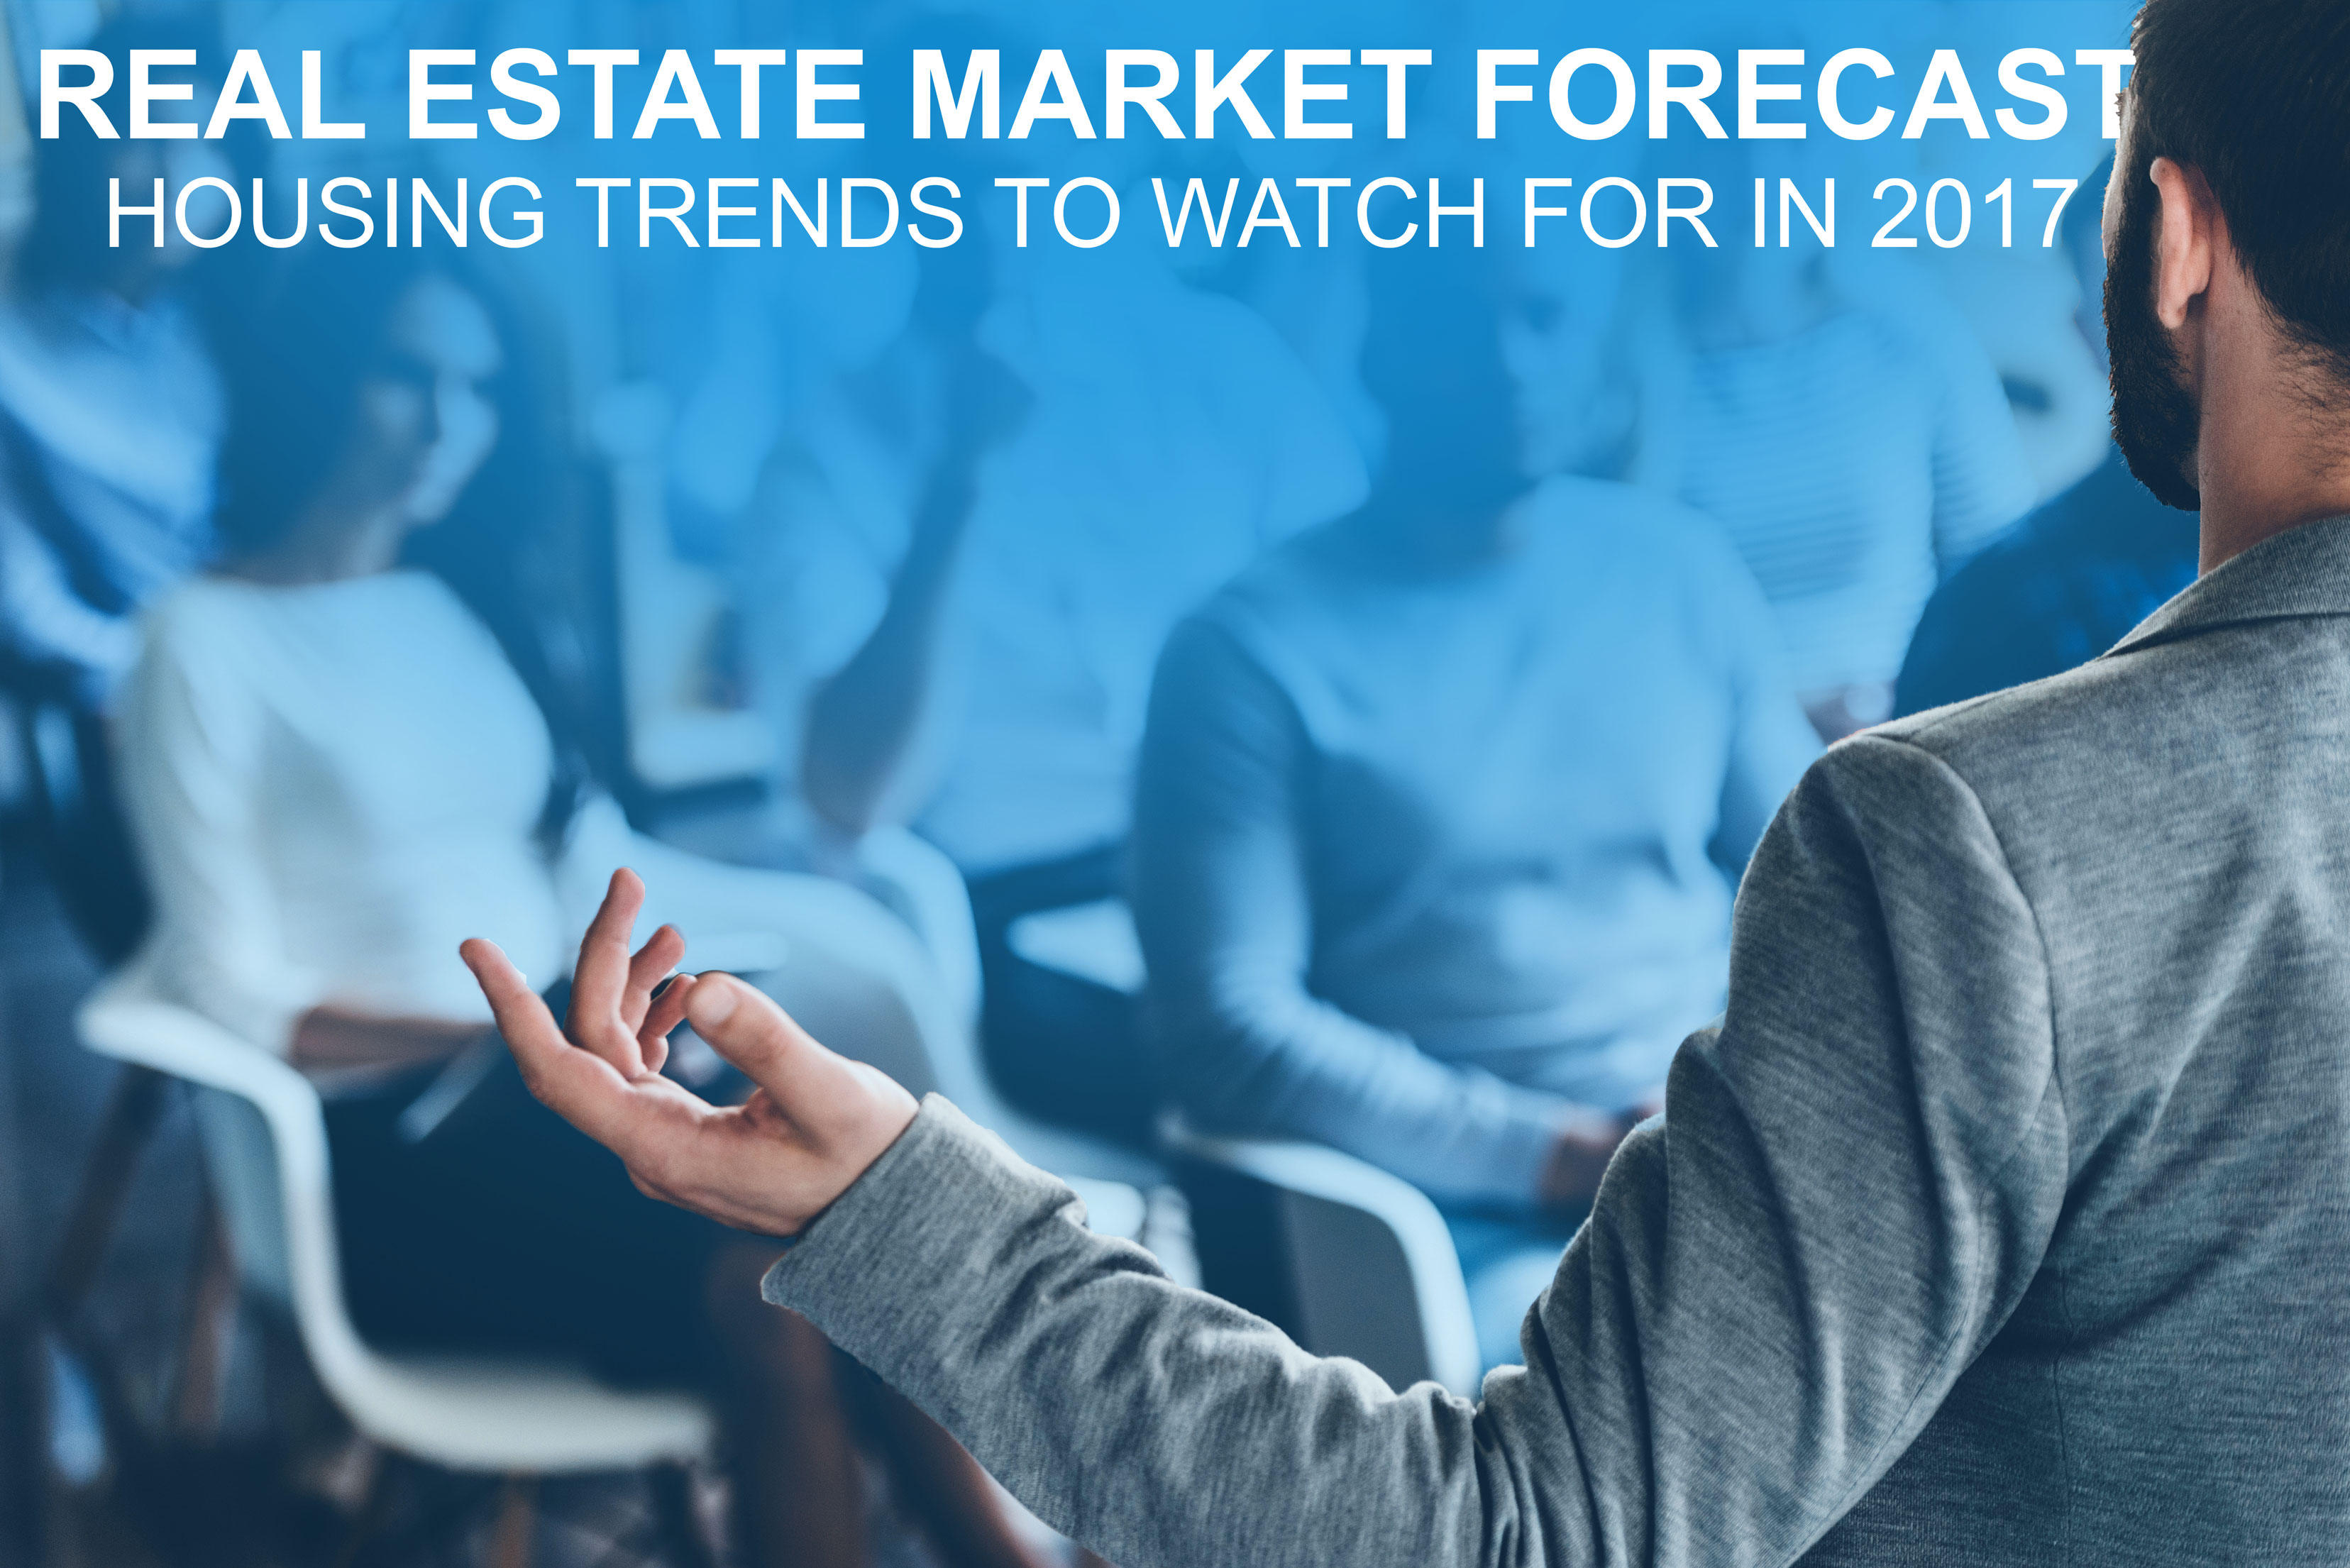 Real Estate Market Forecast: Housing Market Trends to Watch For in 2017